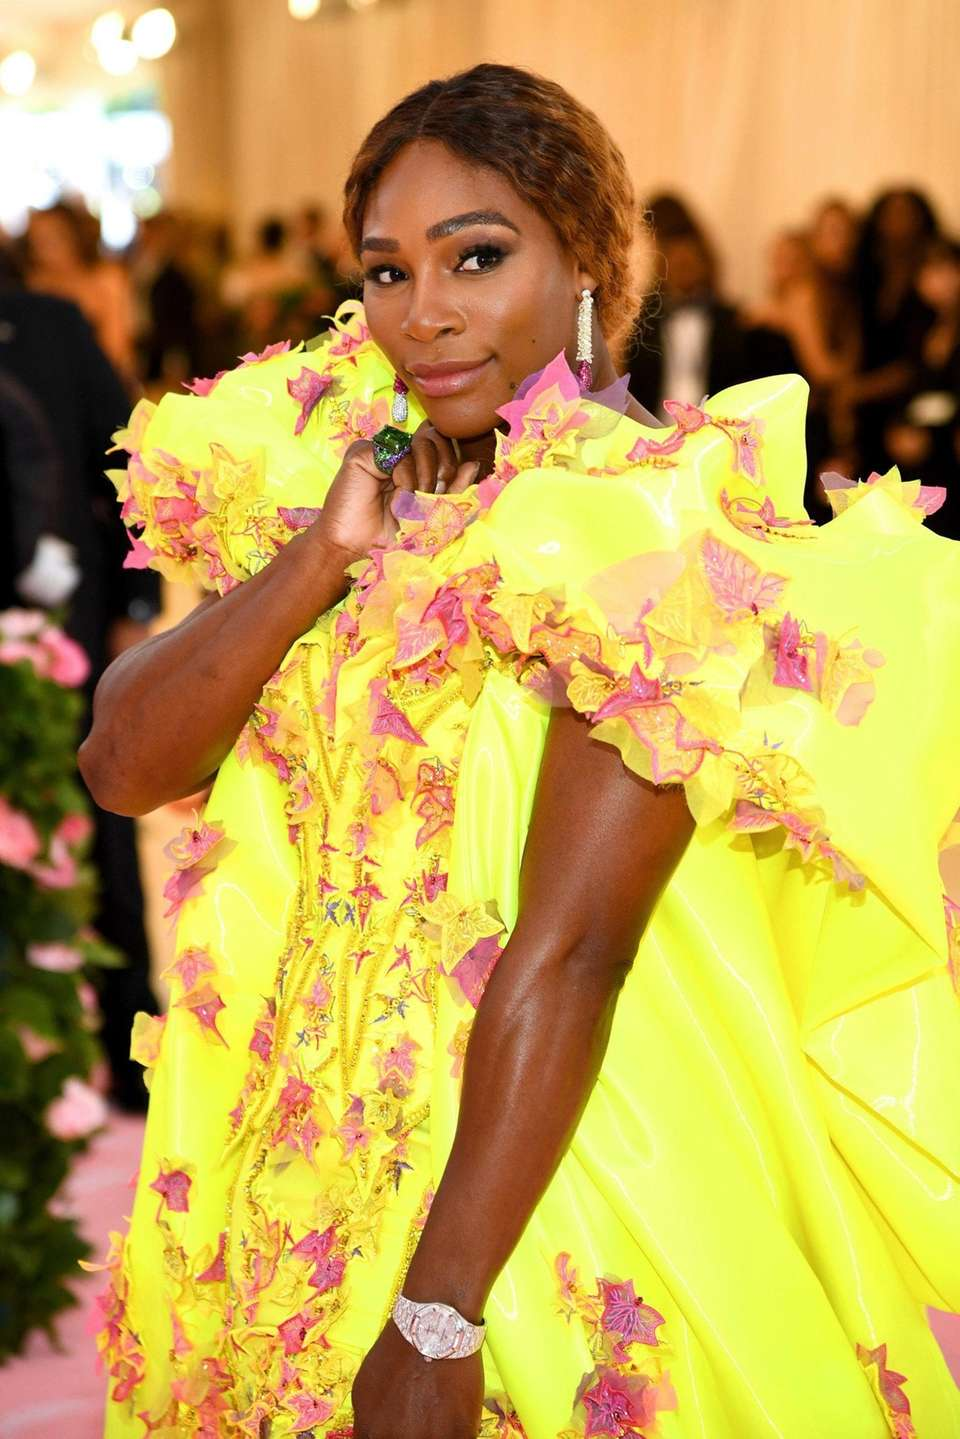 Serena Williams attends The 2019 Met Gala Celebrating